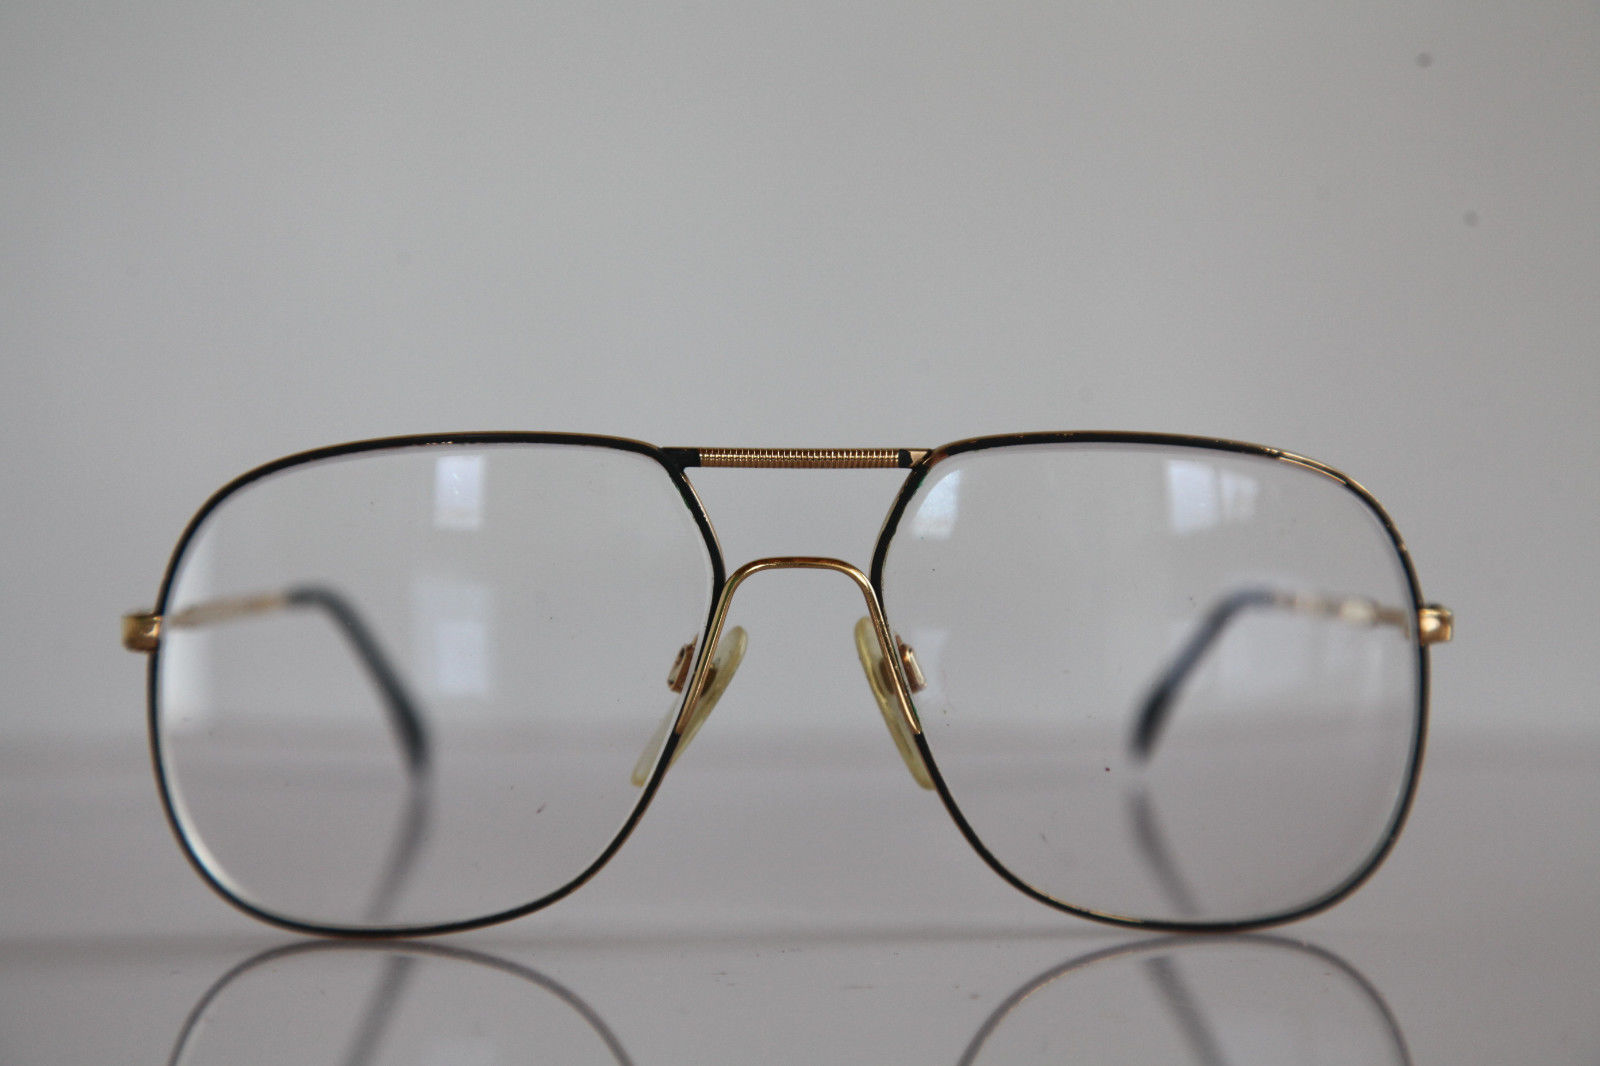 Vintage SILHOUETTE Eyewear, Gold Frame,  RX-Able Lenses Prescription. Austria 2